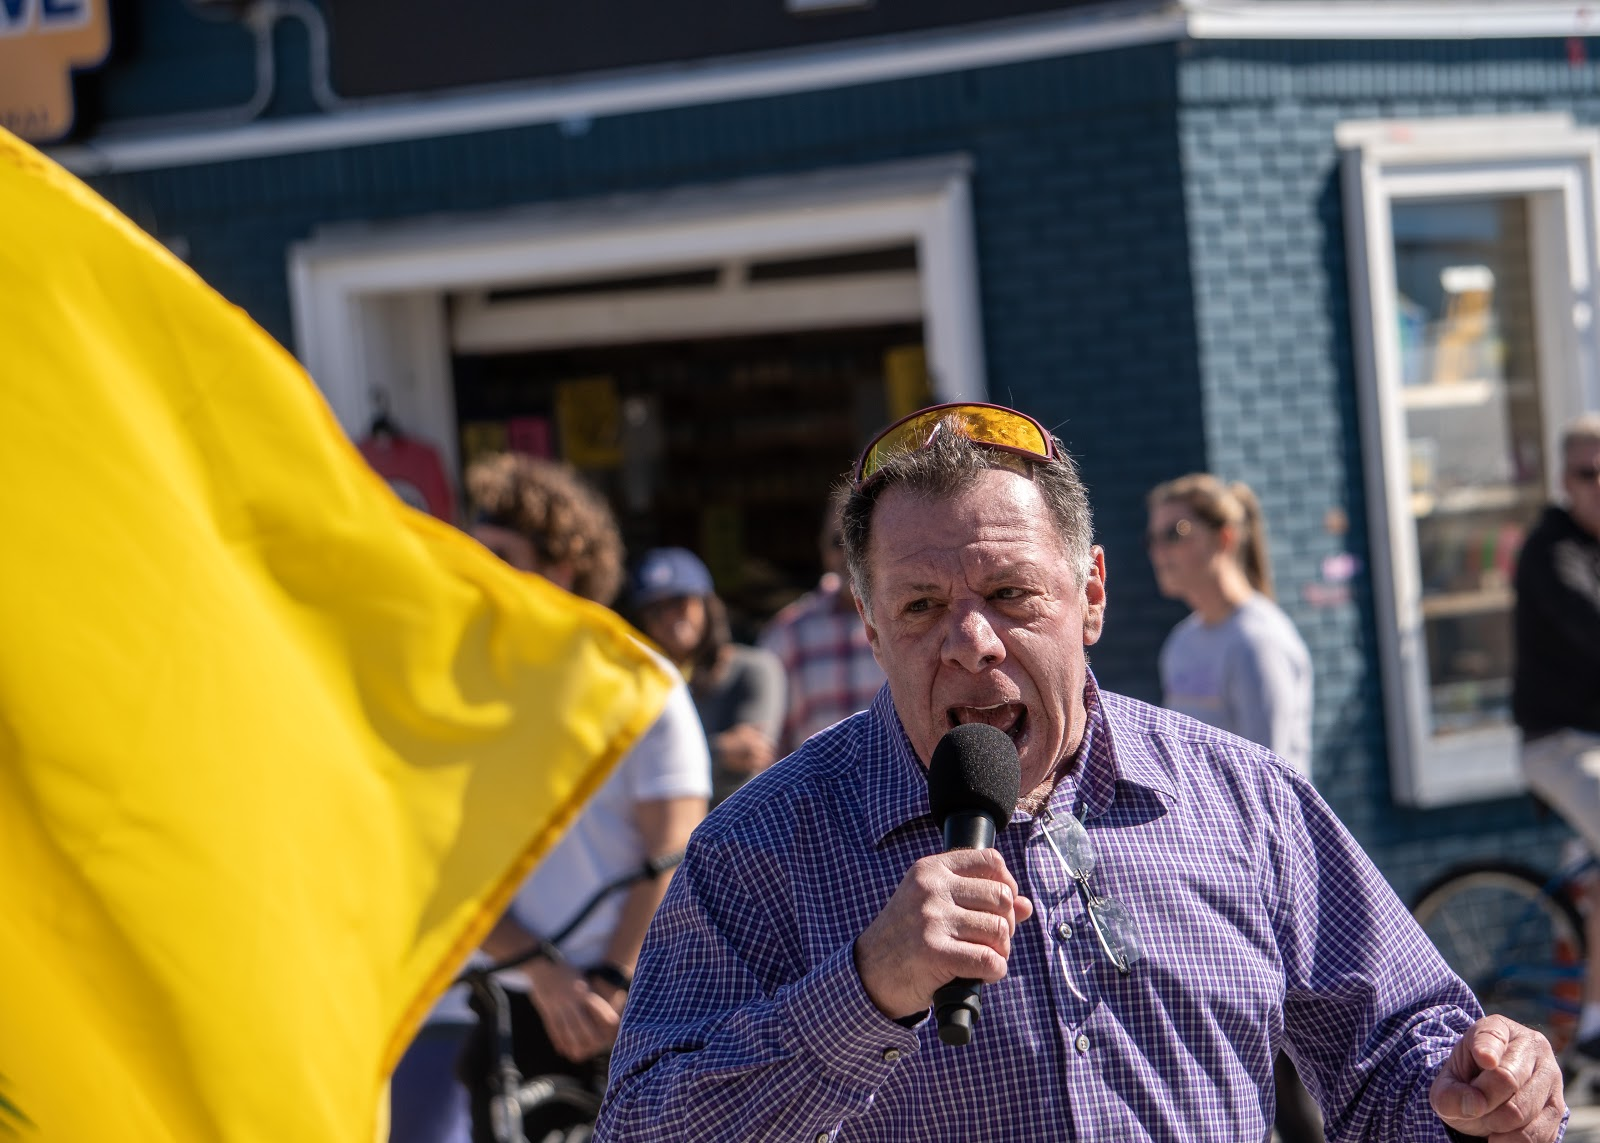 The unidentified speaker yells into a microphone while a gadsden flag blows into frame.N